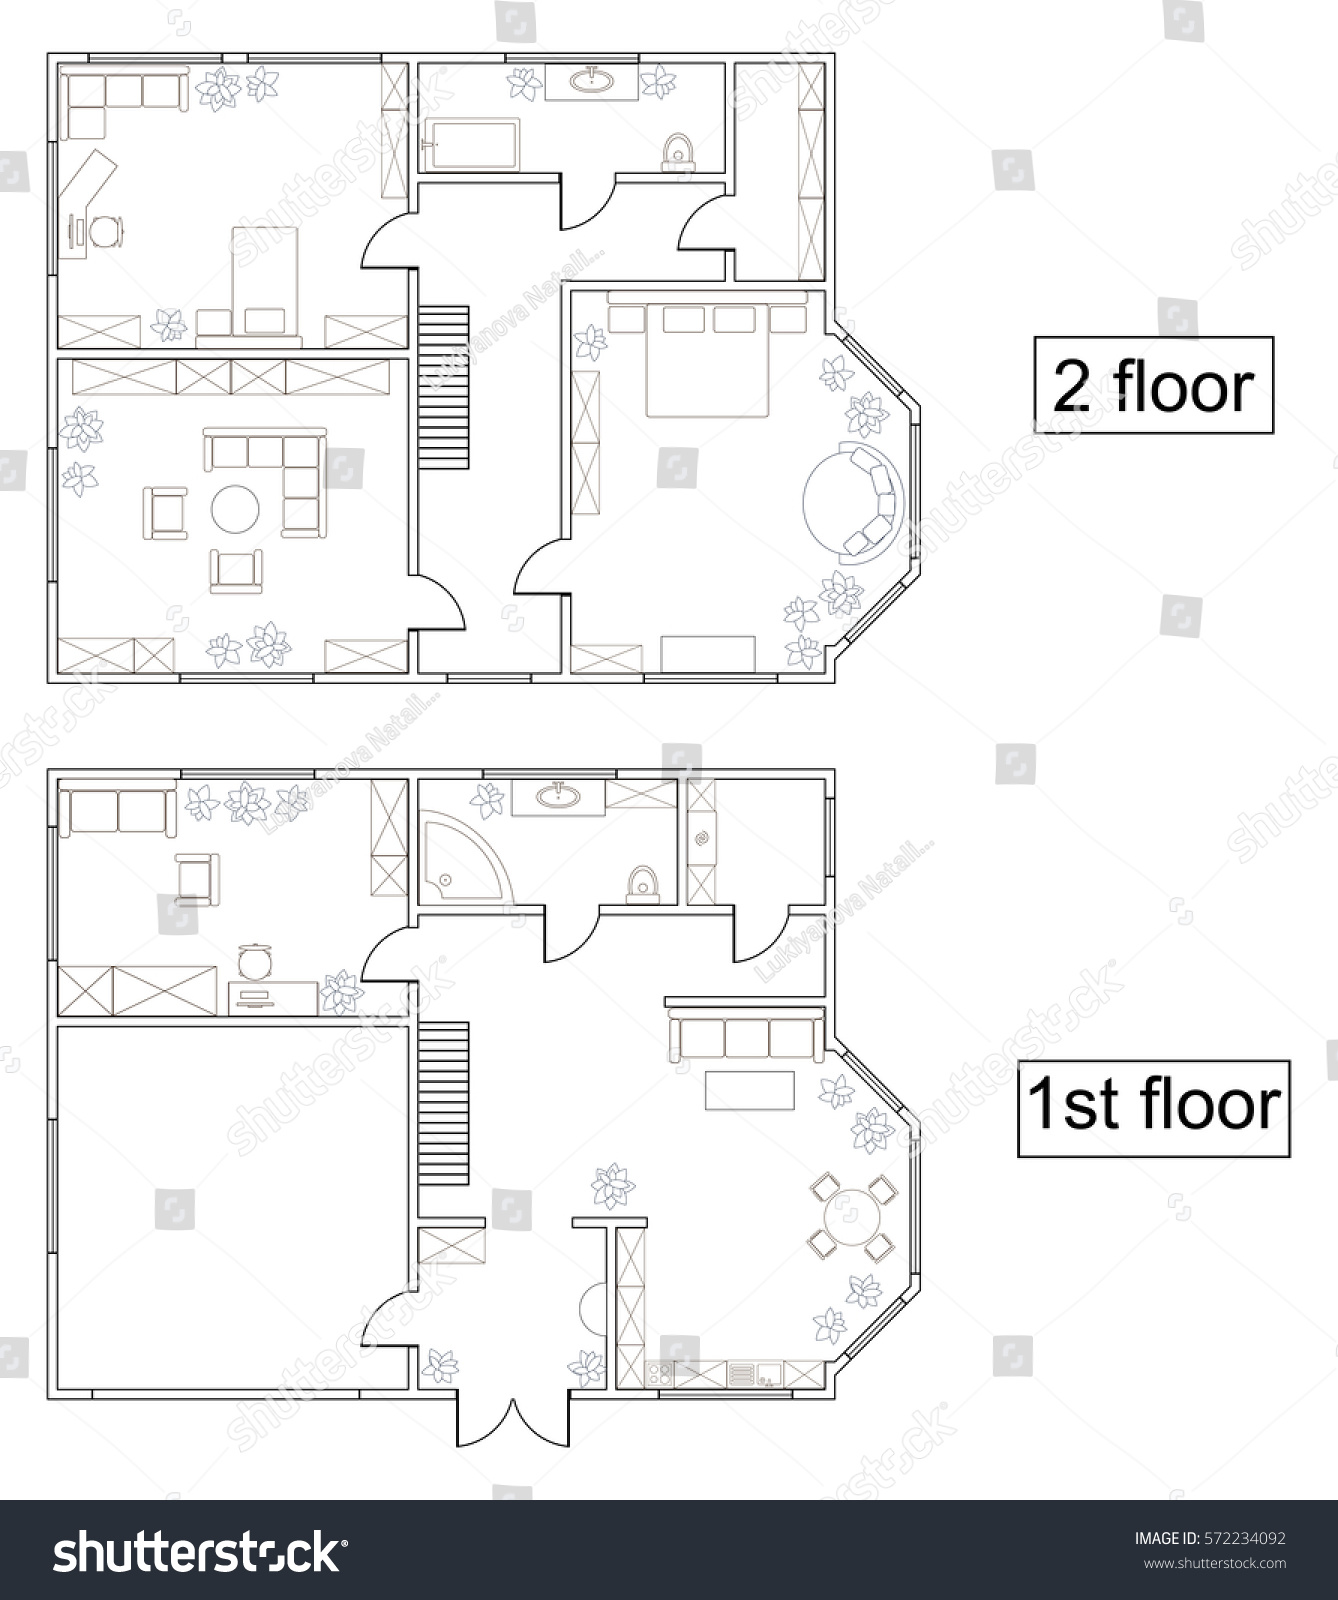 abstract vector plan first second floor stock vector 572234092 abstract vector plan of first and second floor of a two storey house with